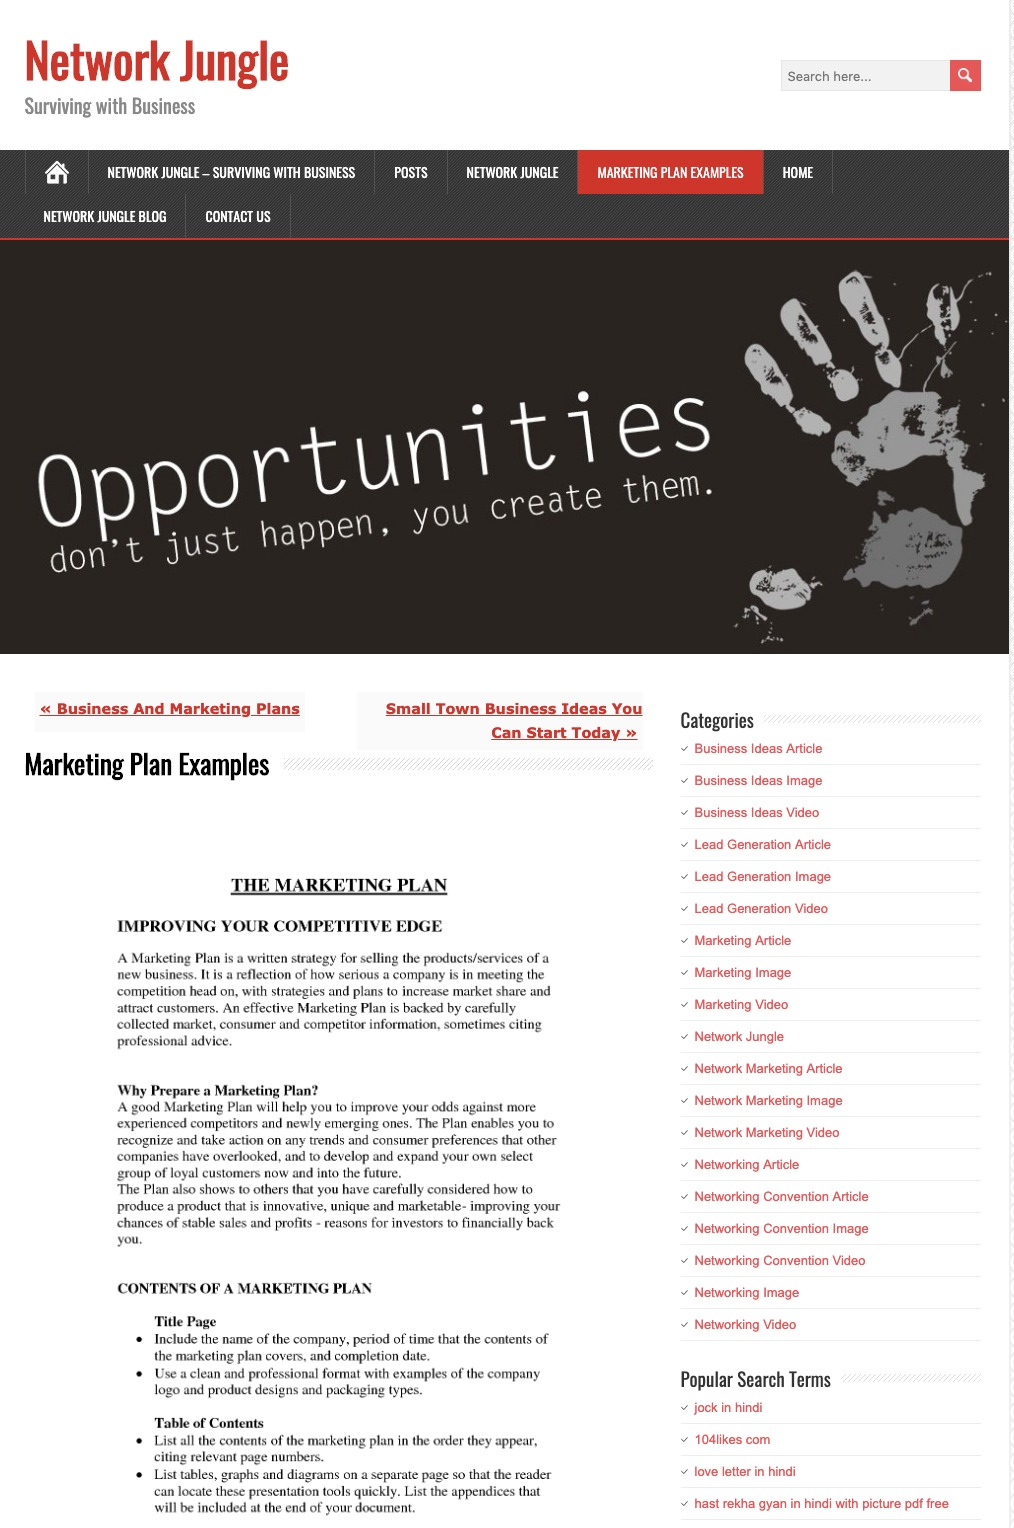 How To Write A Marketing Plan In 2021 Templates Examples